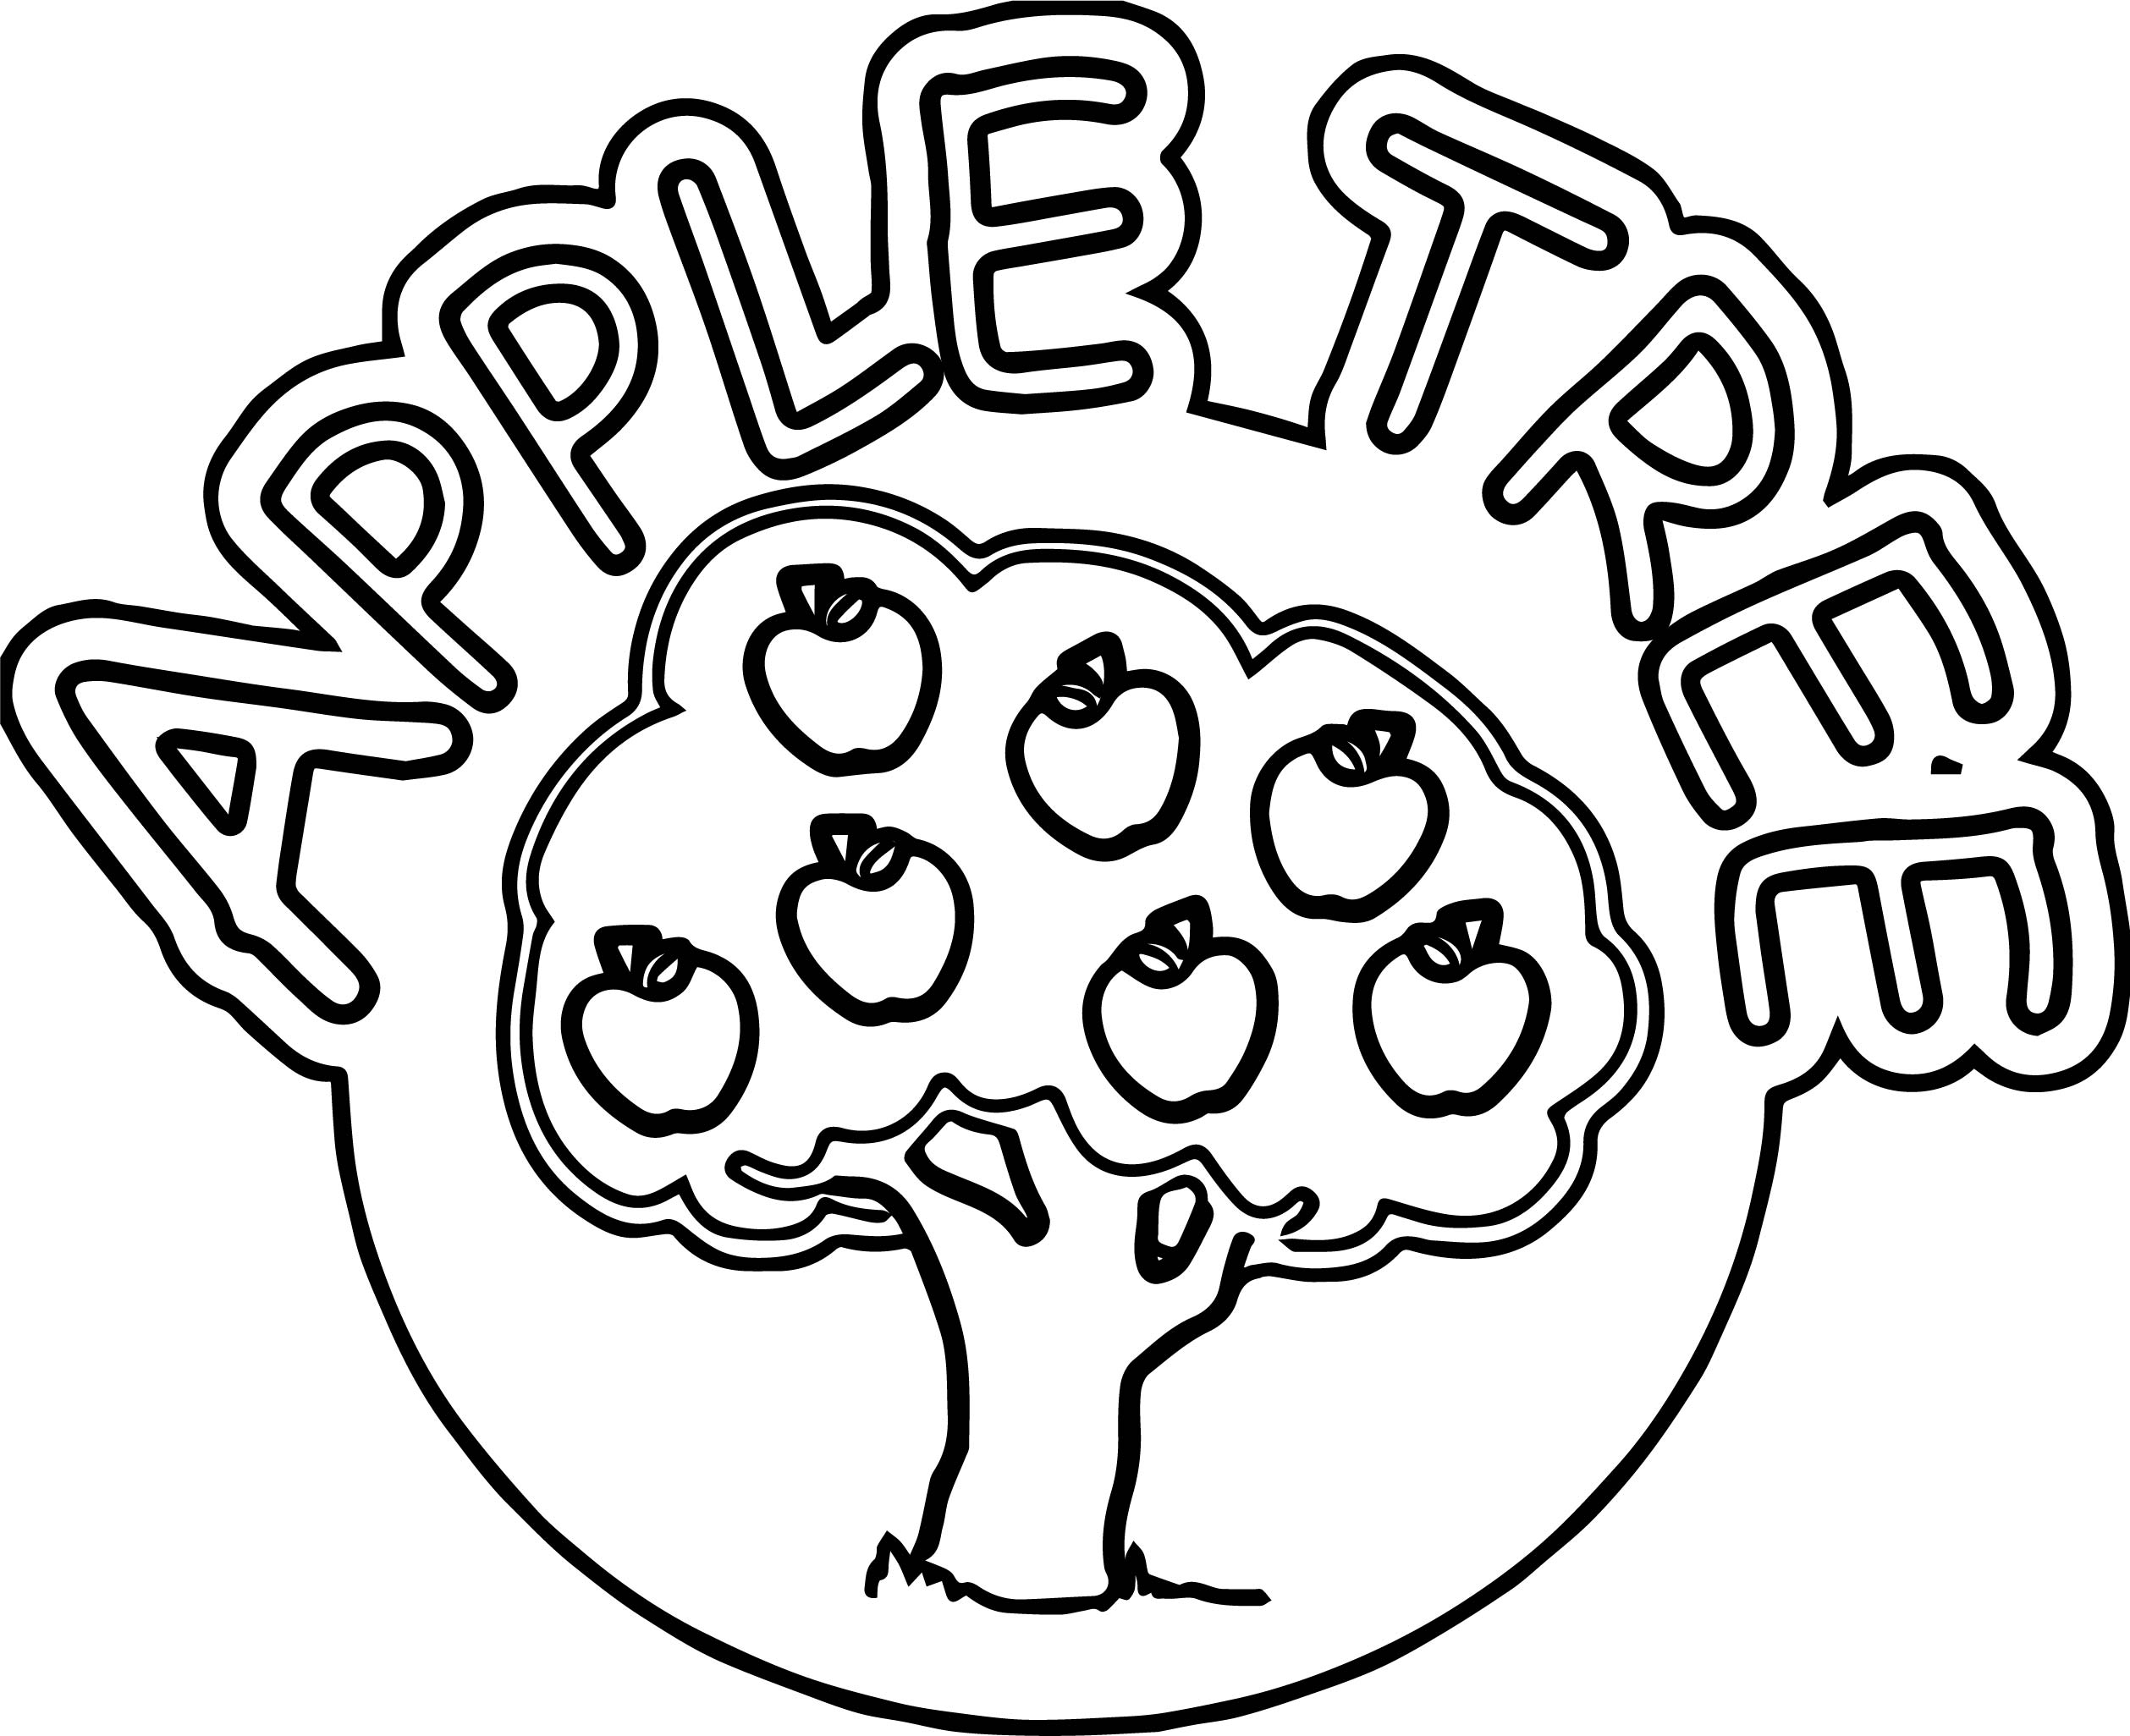 Cartoon Apple Coloring Pages : Apple tree coloring book